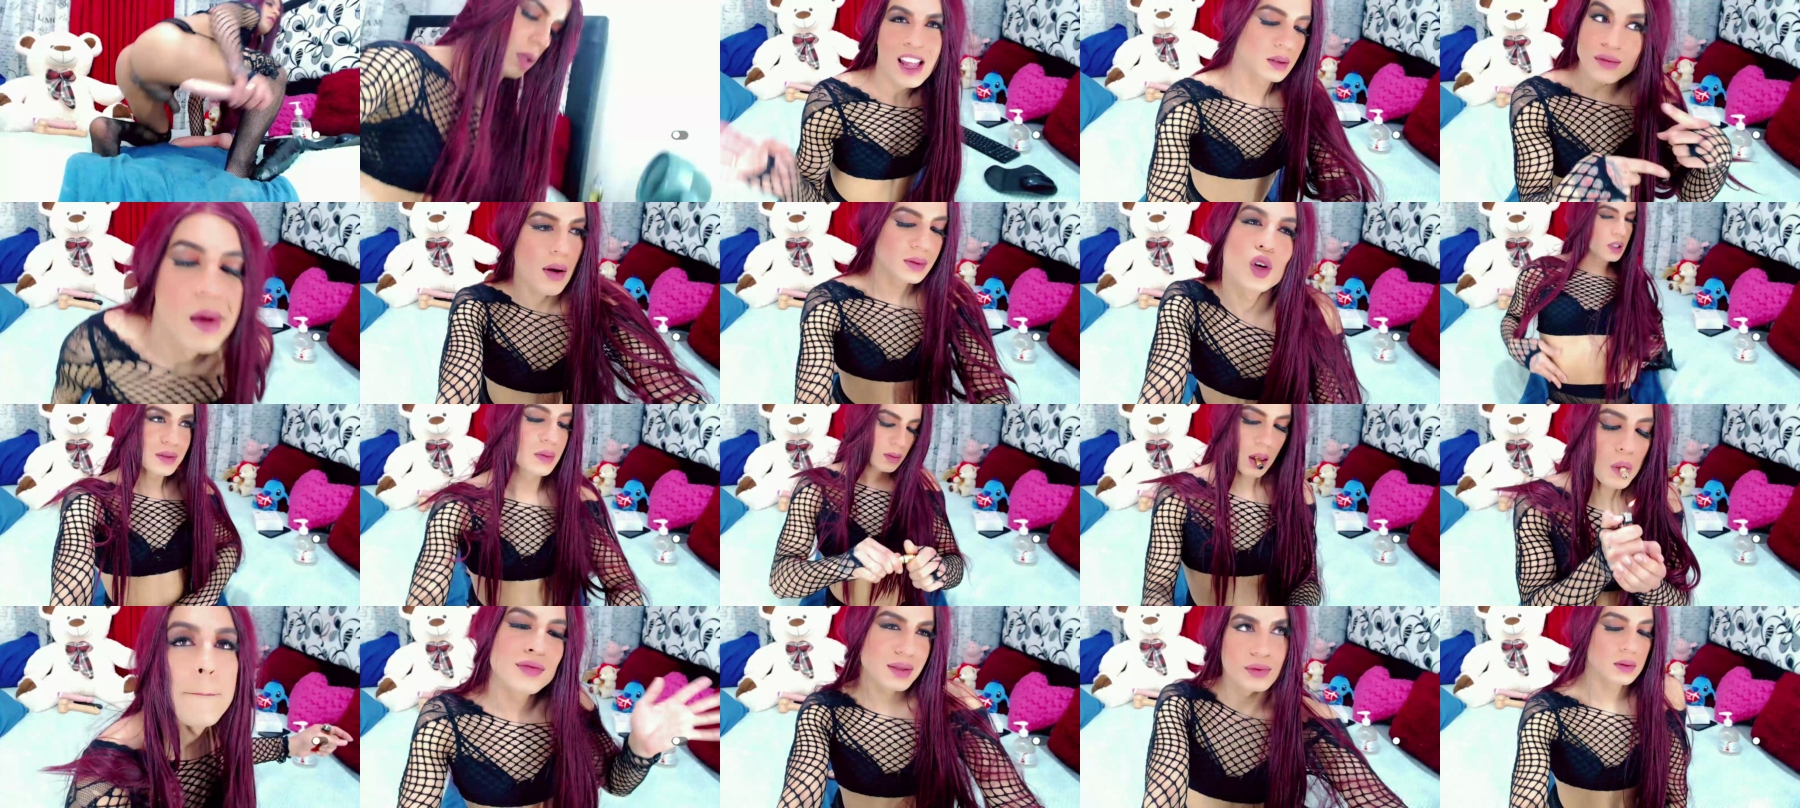 Tiffany_Taylersex Nude CAM SHOW @ Chaturbate 17-09-2021